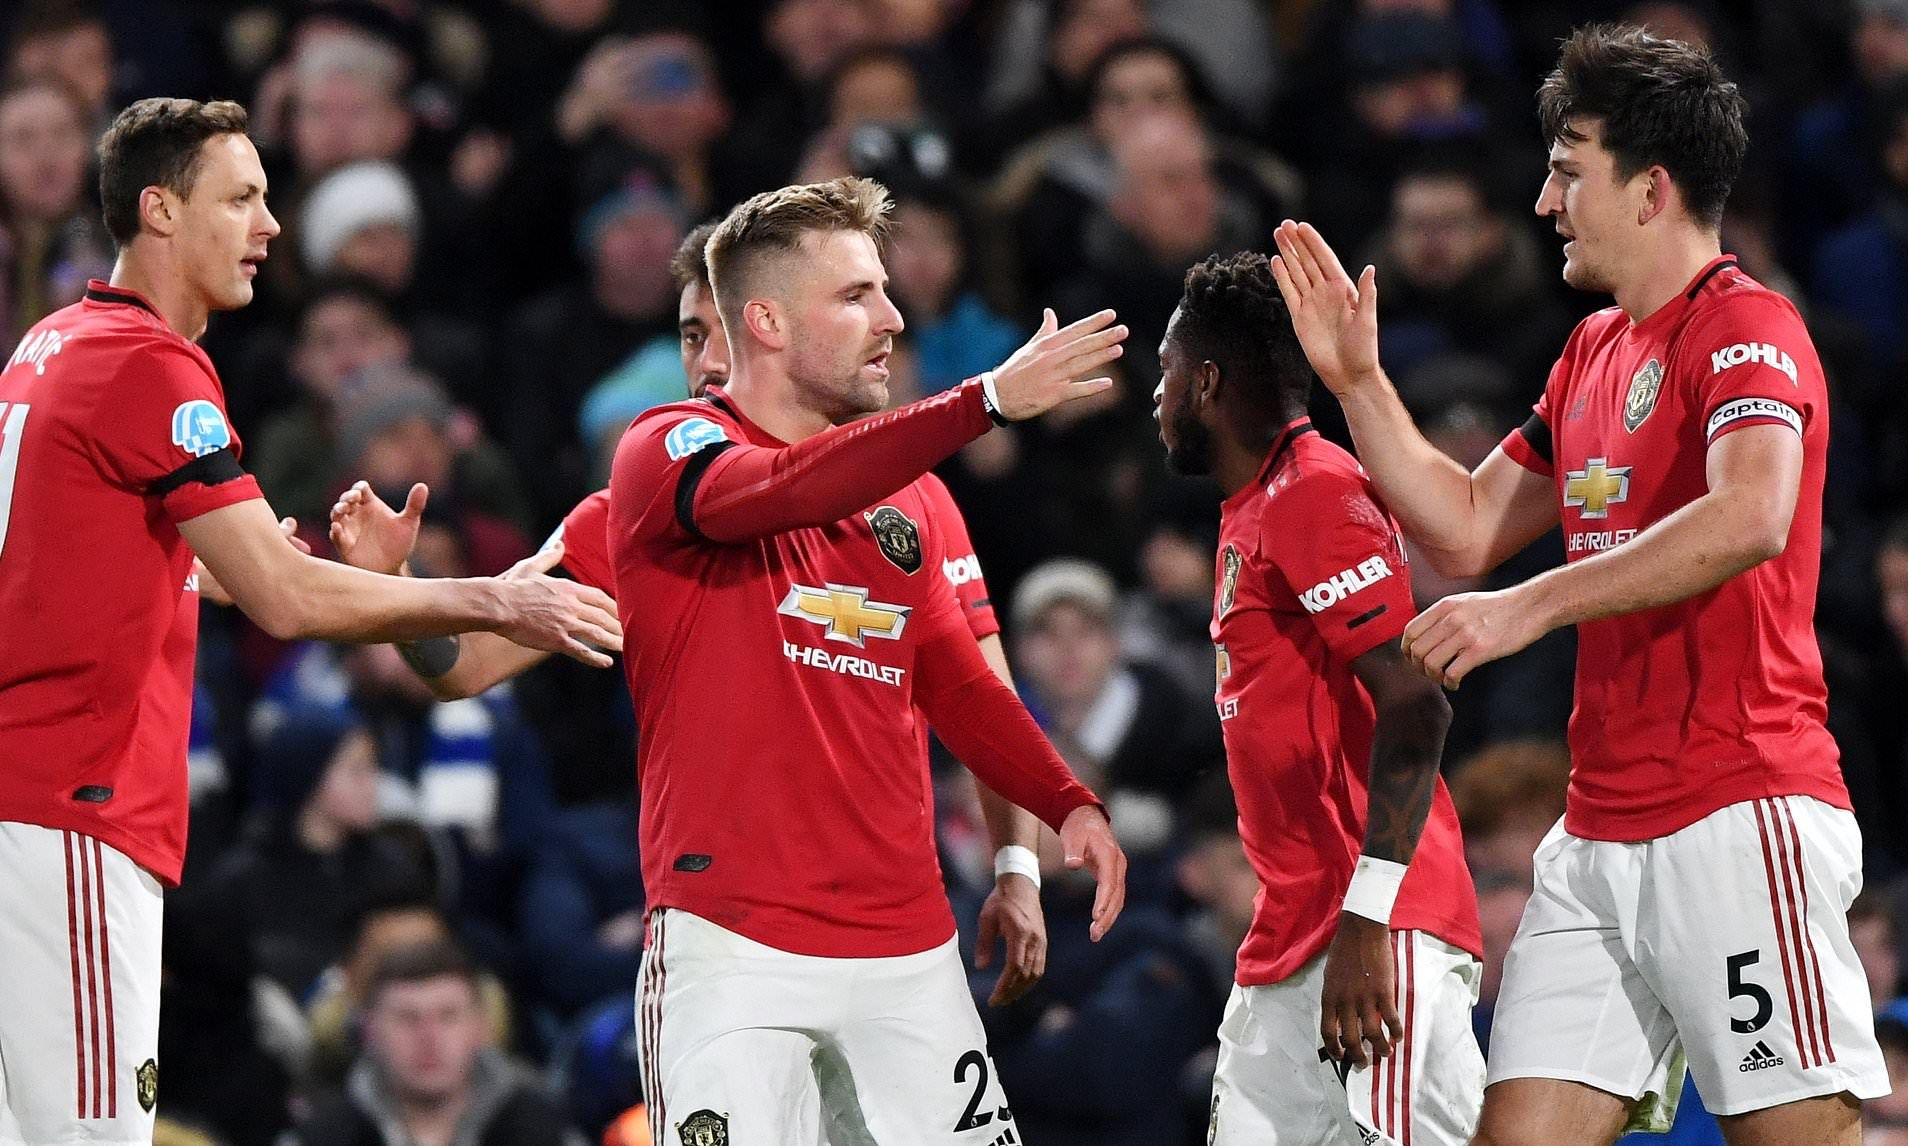 Manchester United S Harry Maguire Had Expected He Might Rating Via Corner In Opposition To Chelsea In 2020 Premier League Goals Manchester United Manchester